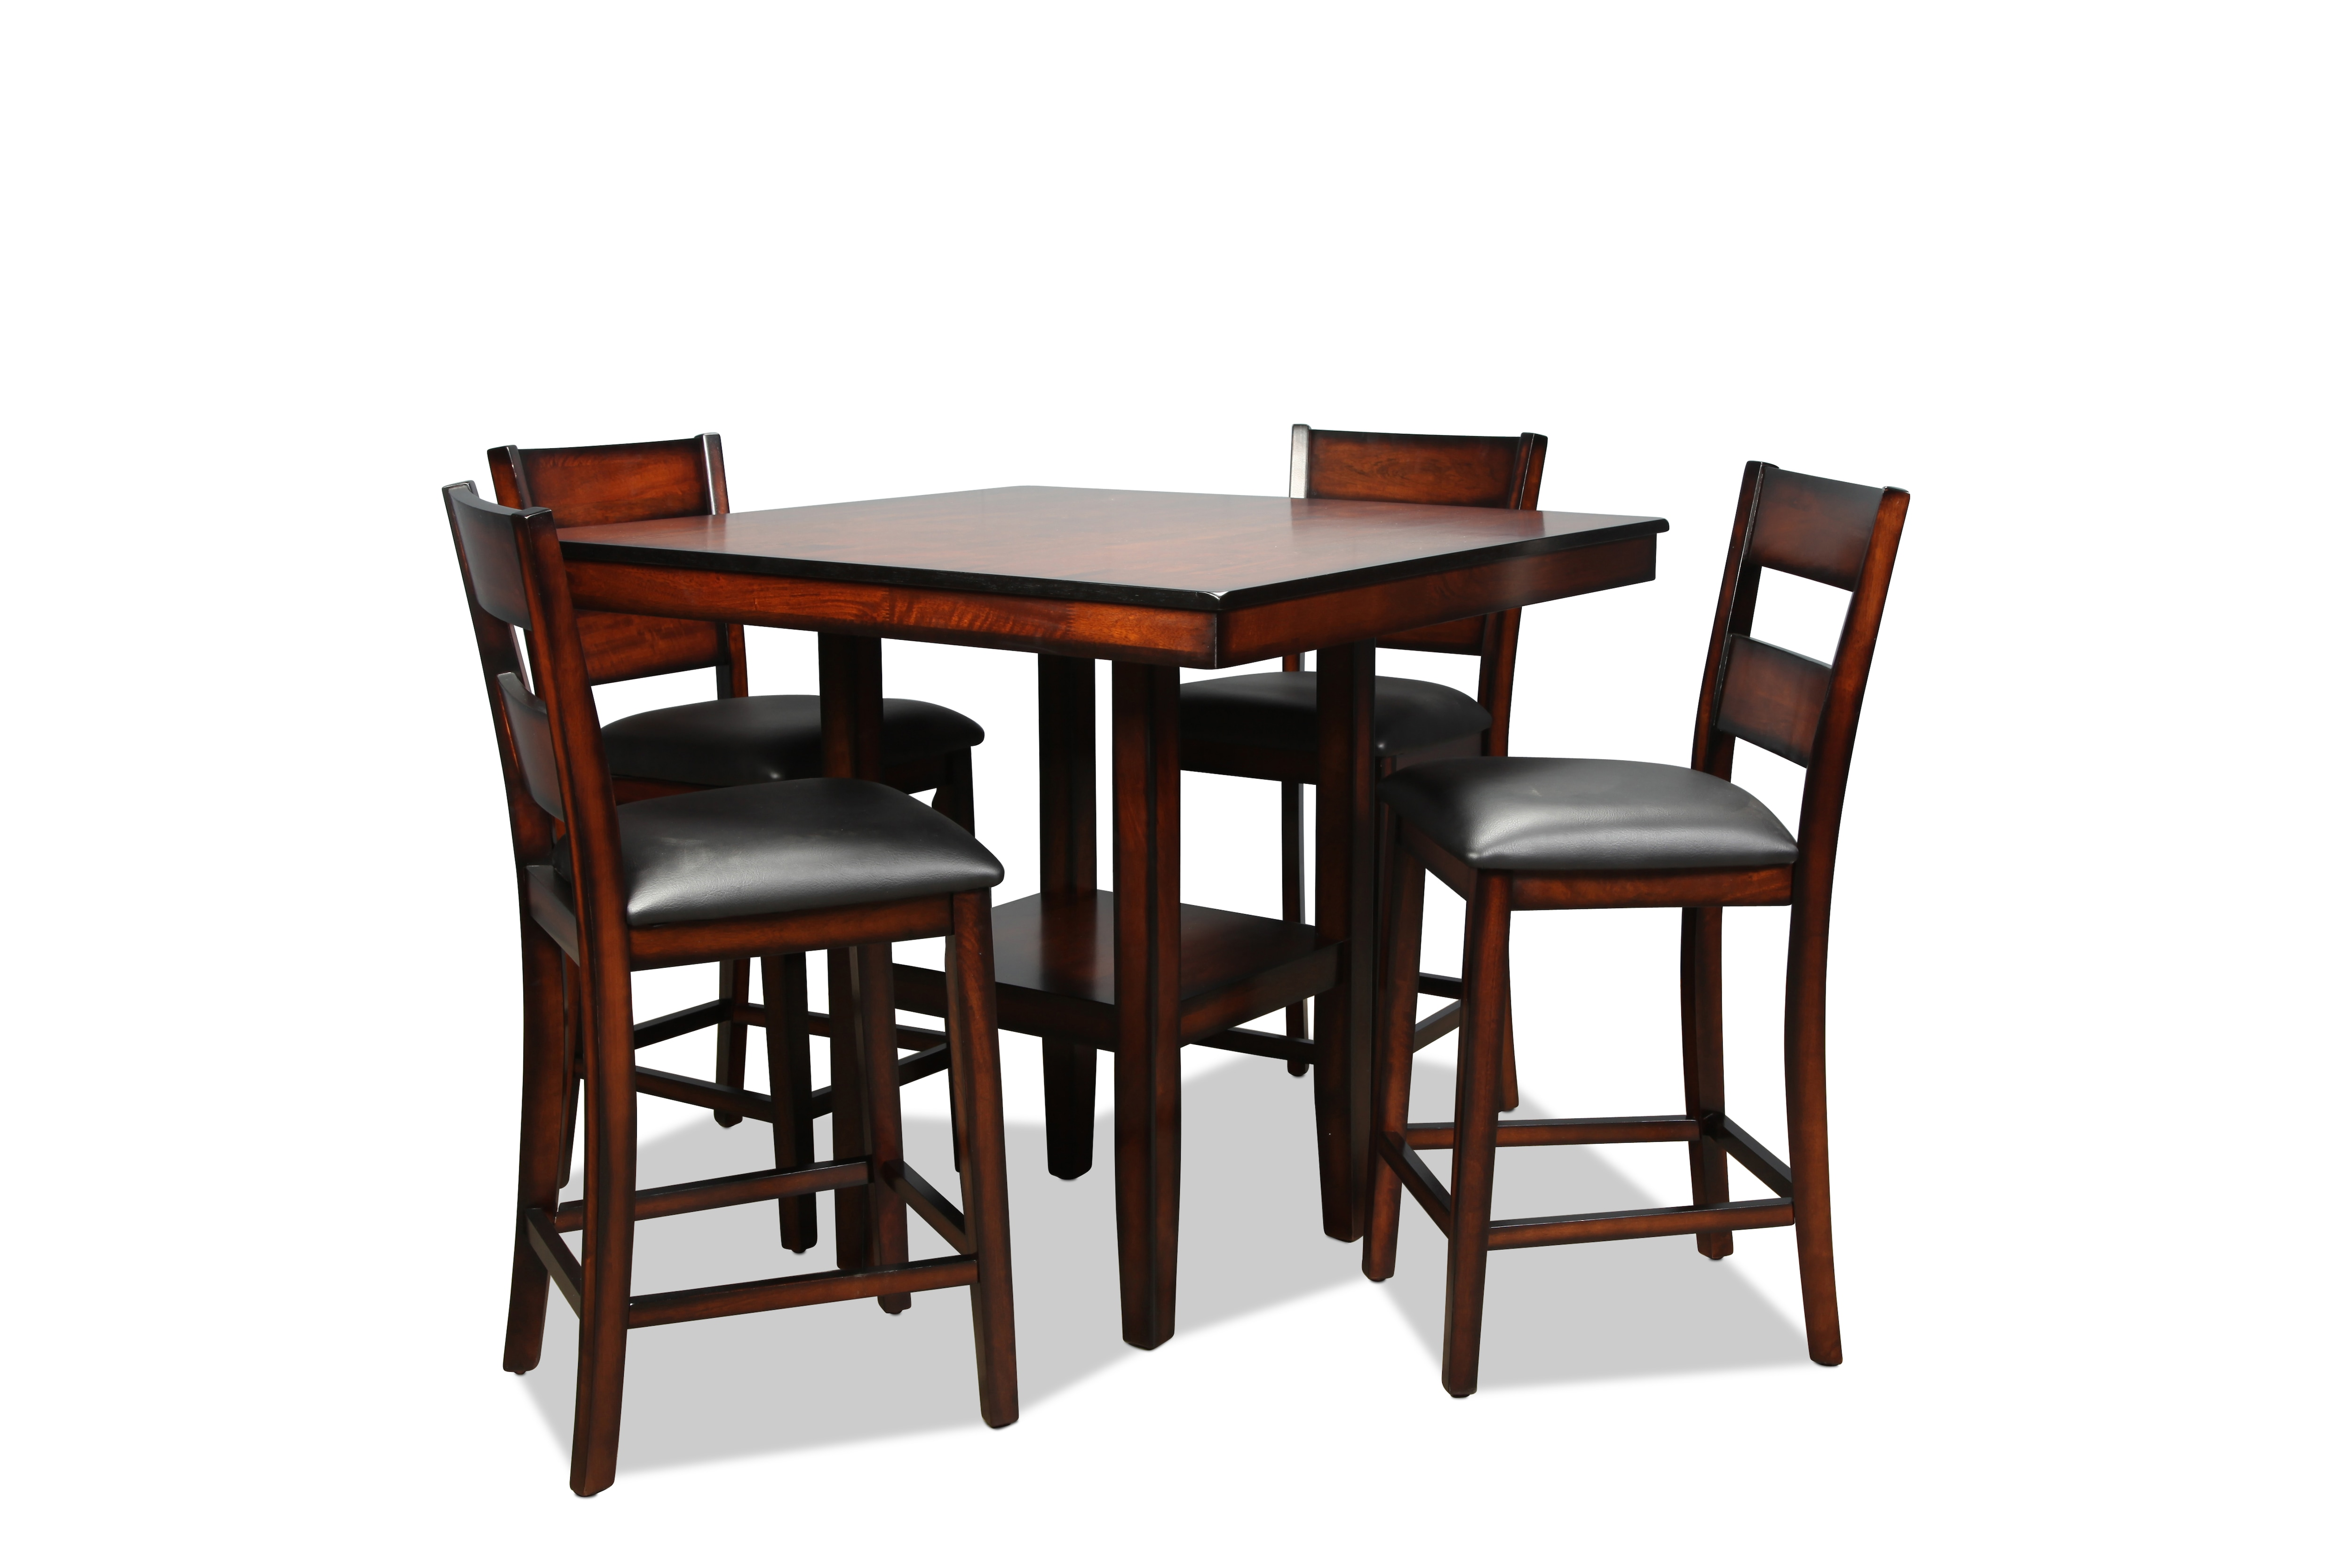 Balfour Counter-Height Table and 4 Barstools